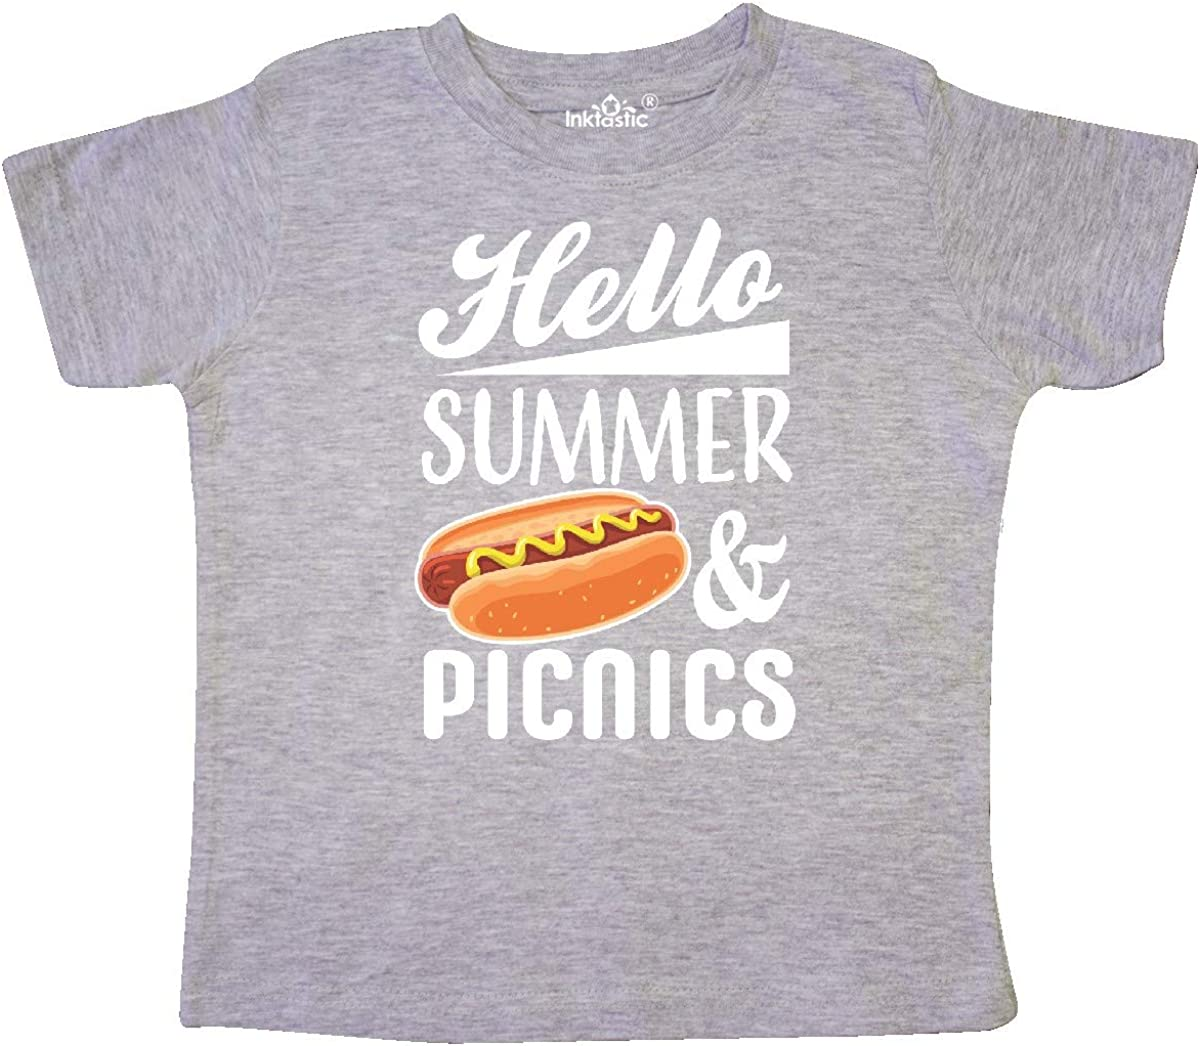 inktastic Hello Summer and Picnics with Hot Dog Toddler T-Shirt